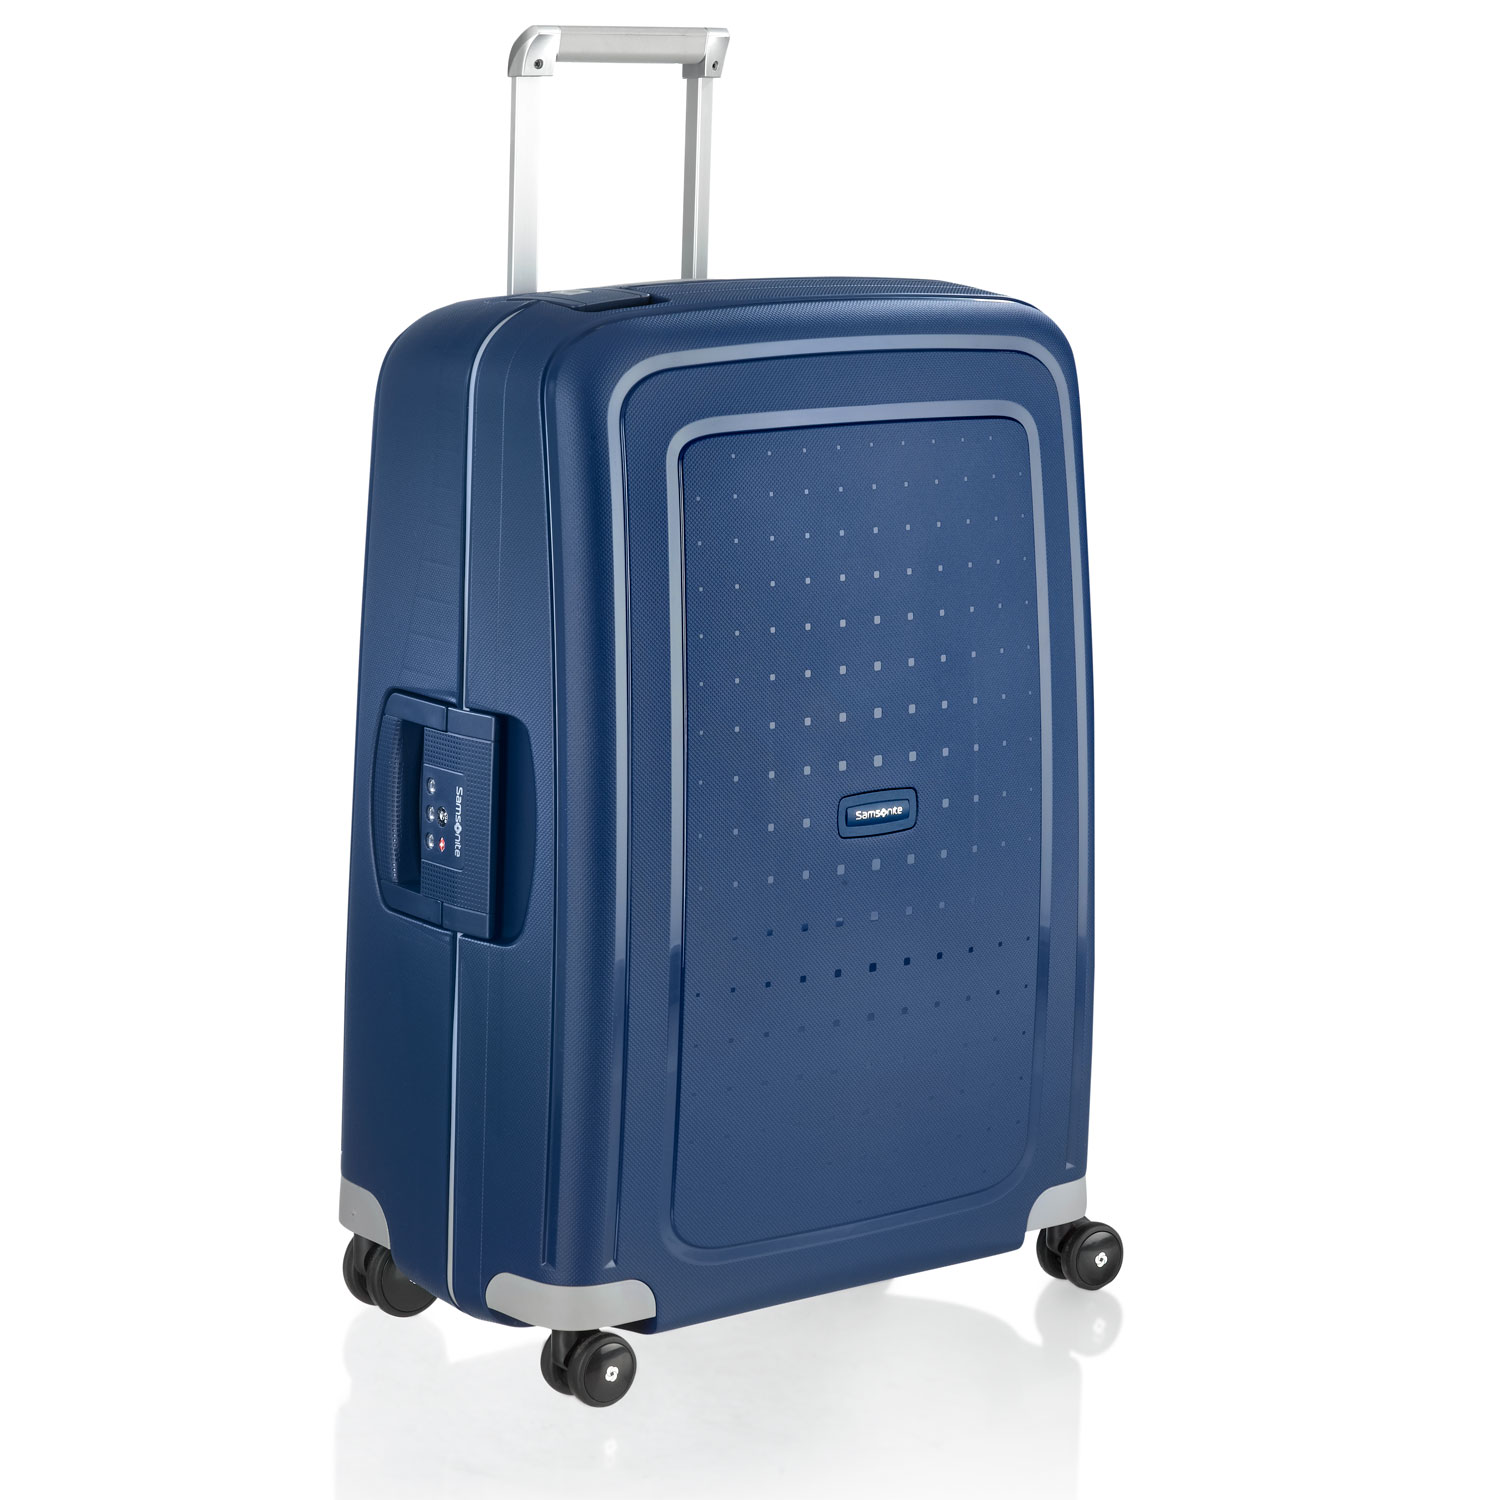 Samsonite-S-039-Cure-28-Inch-Spinner-Suitcase-Zipperless-Hard-Shell-Luggage